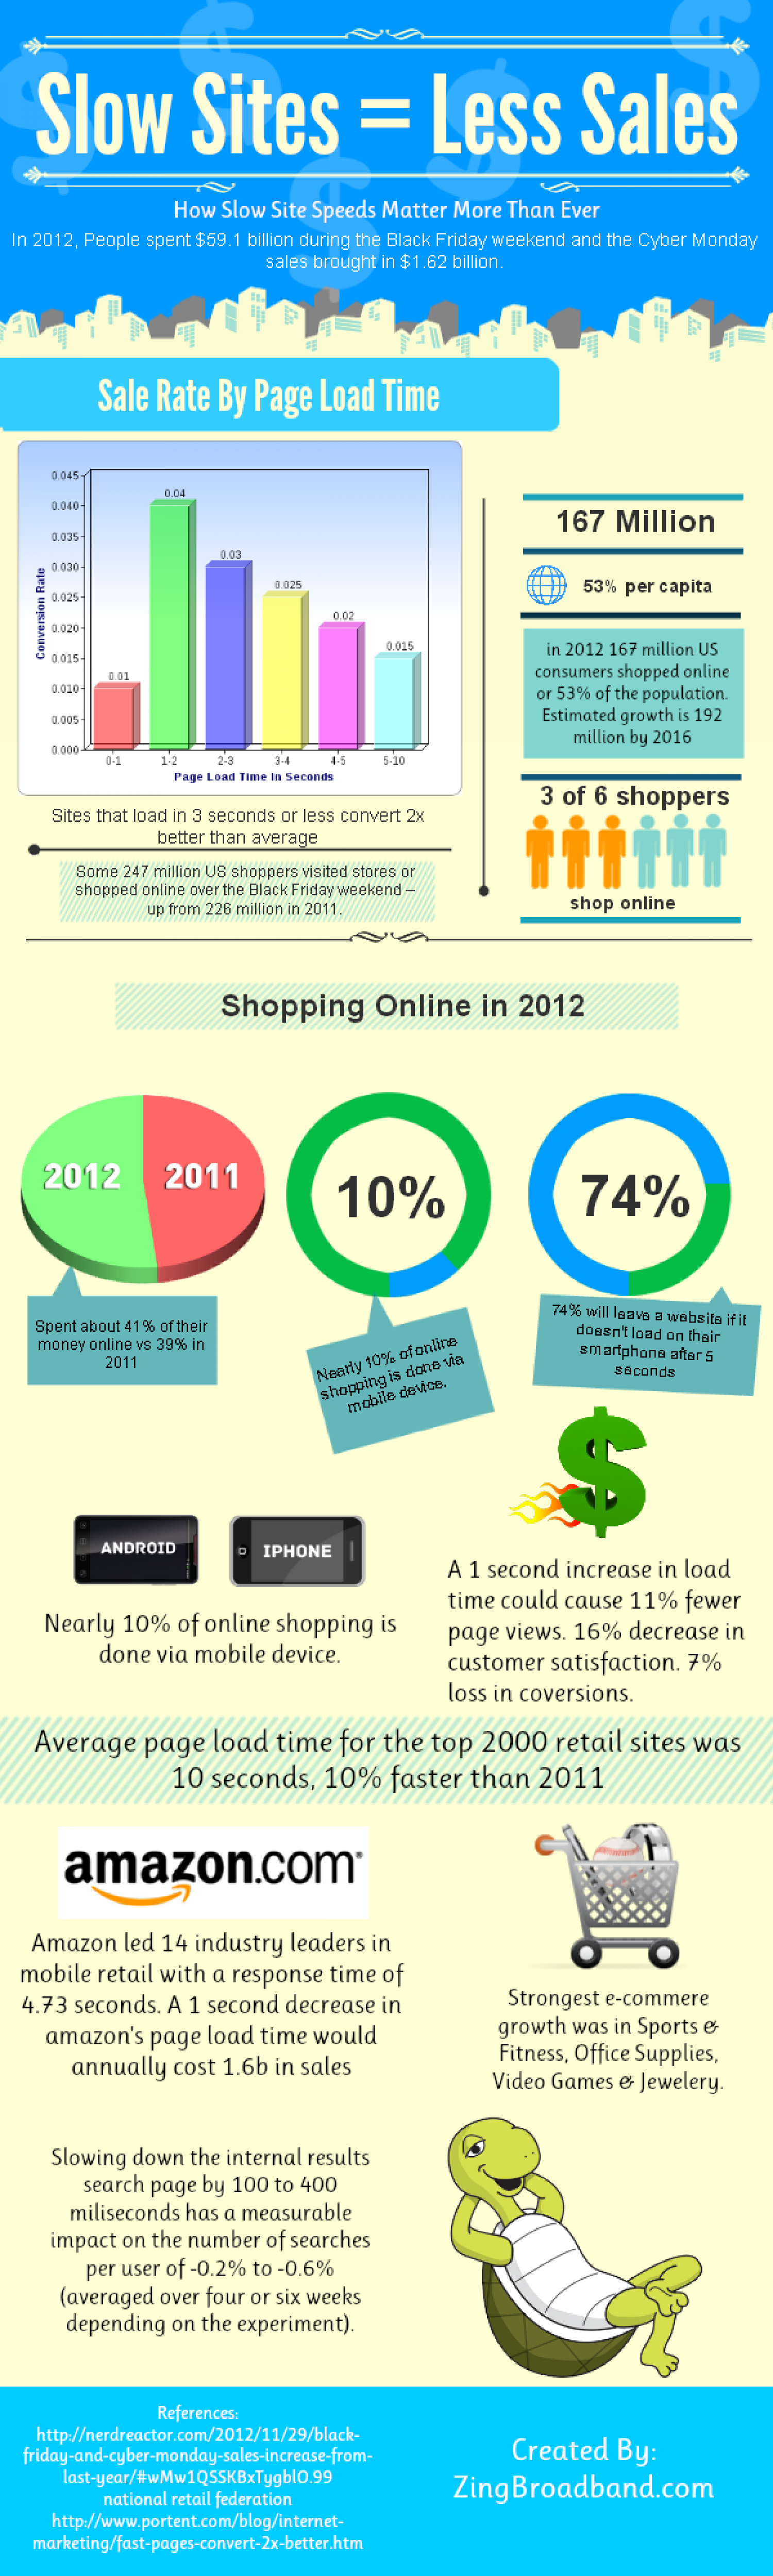 Slow Sites = Less Sales Infographic